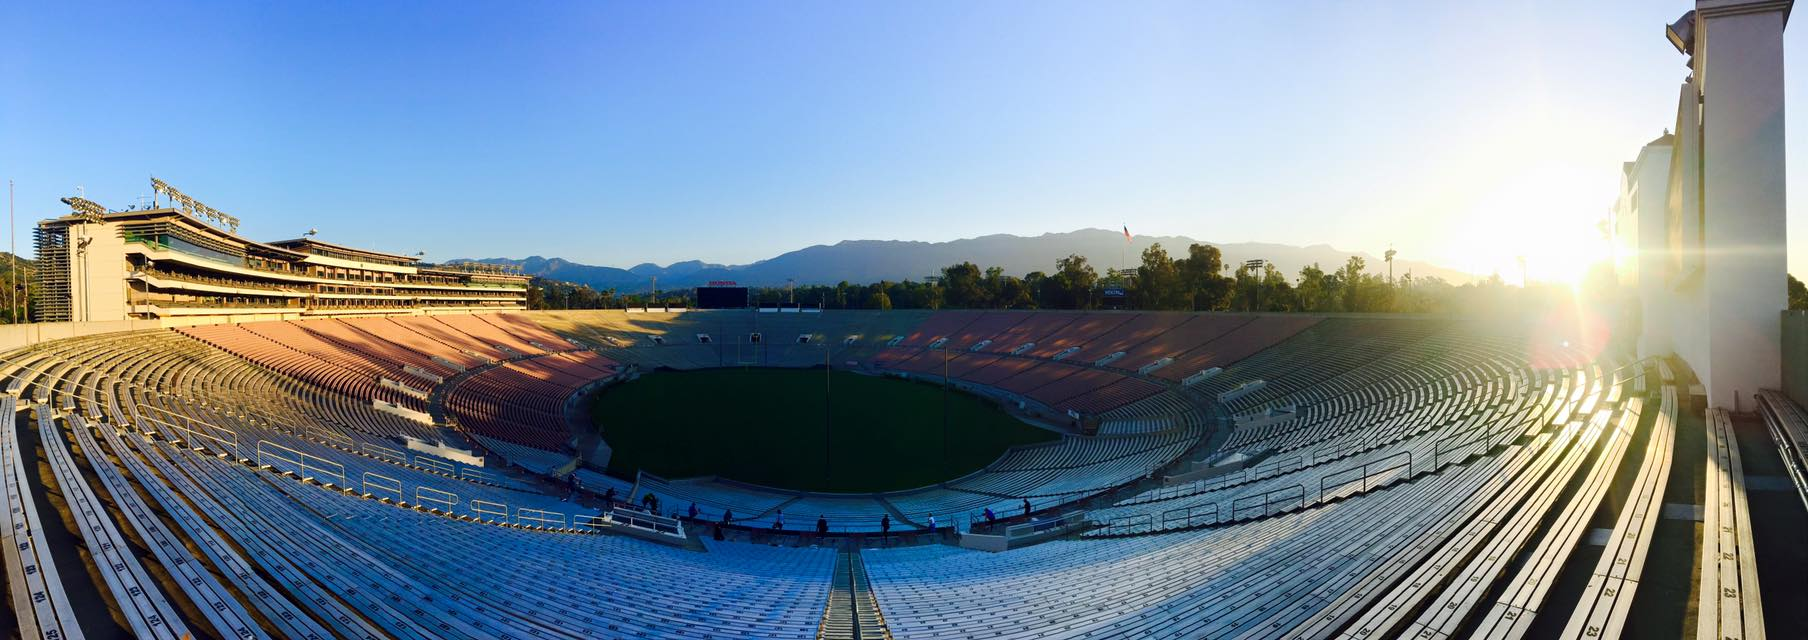 Rose Bowl view 2